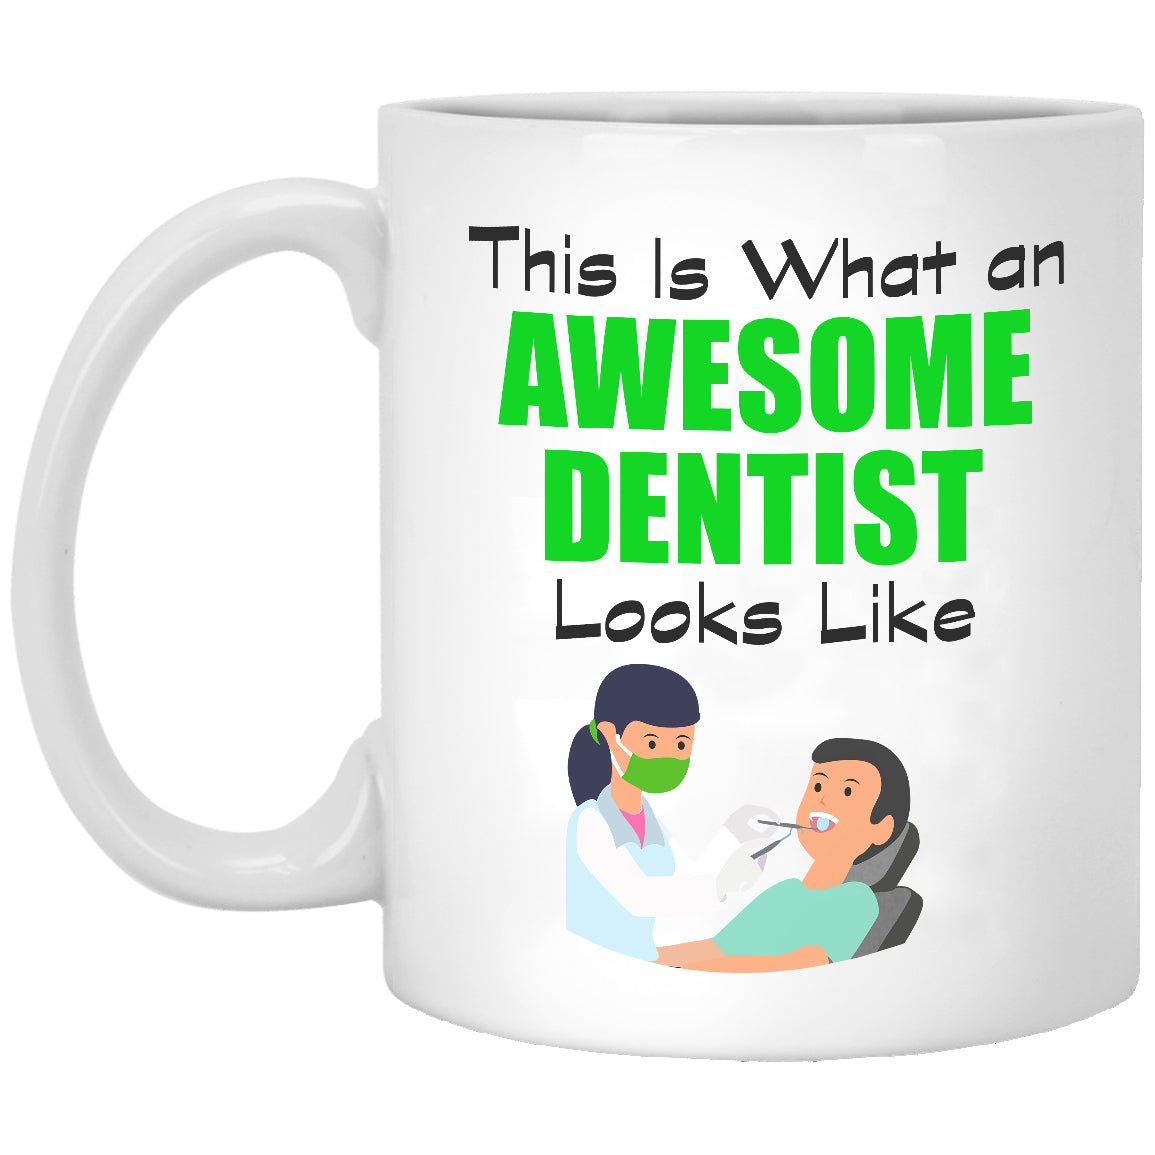 This Is What An Awesome Dentist Looks Like - 11 oz. White Mug